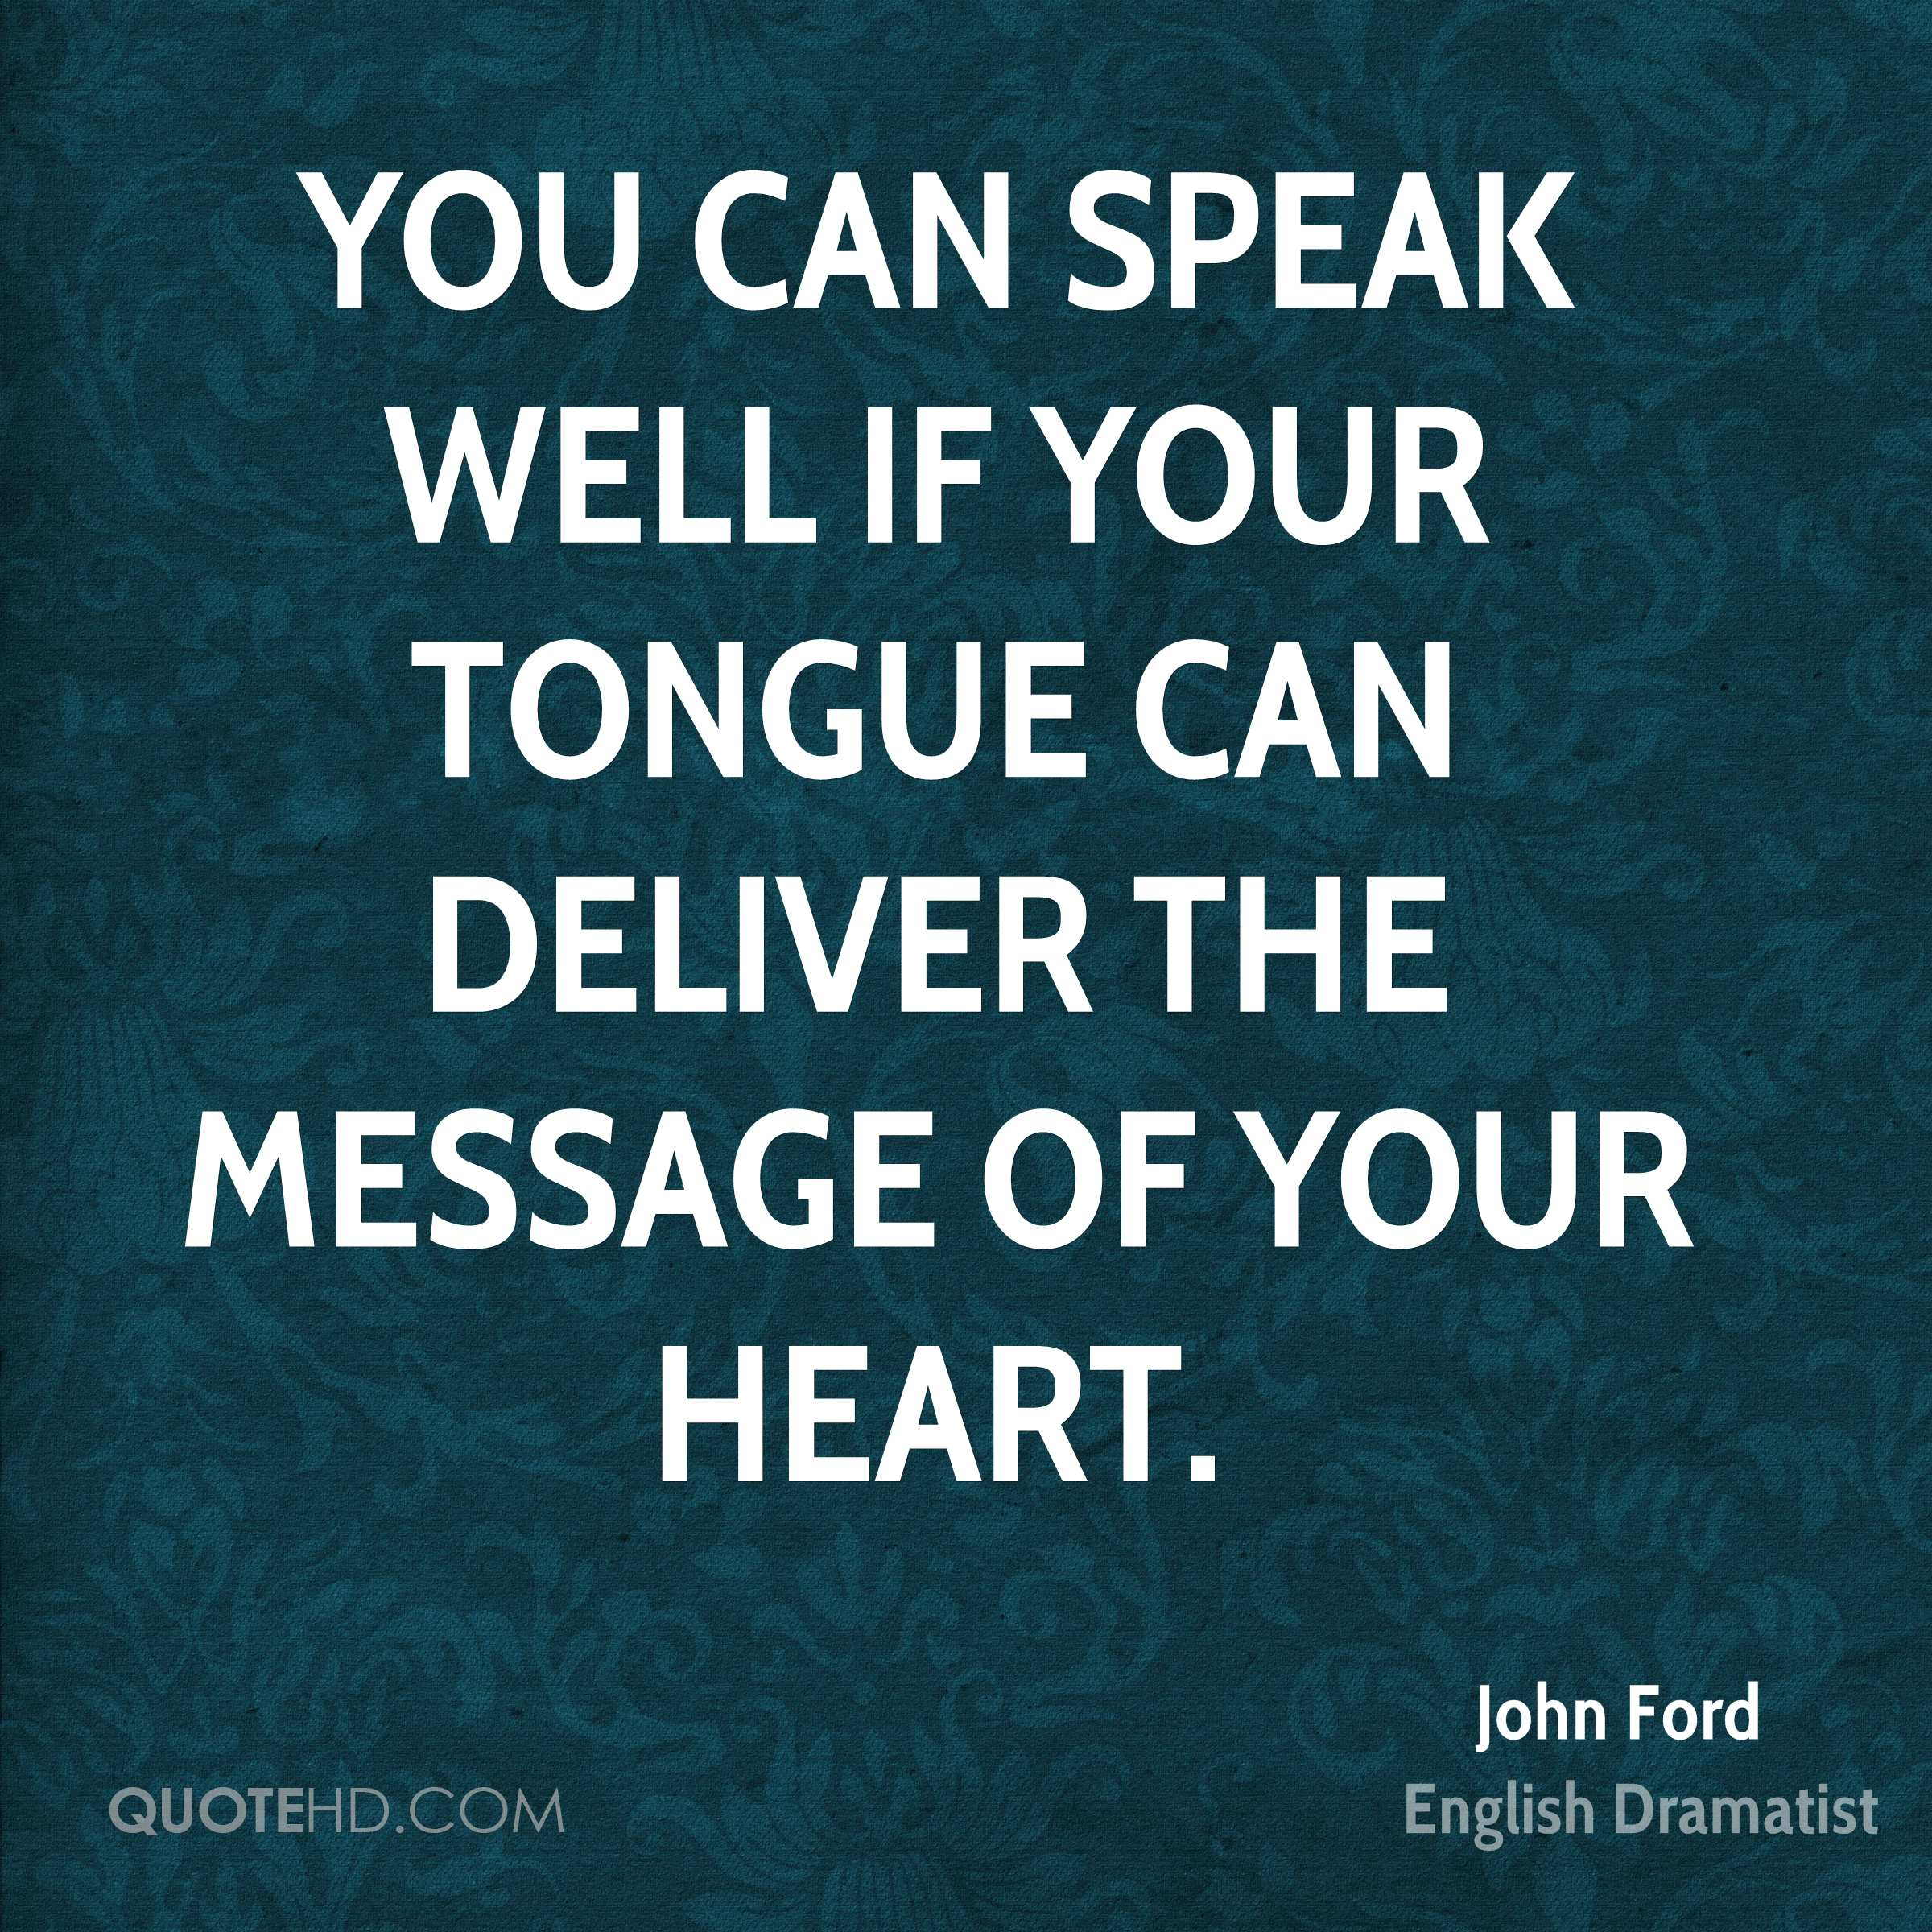 Can speaking in tongues be taught? - Quora